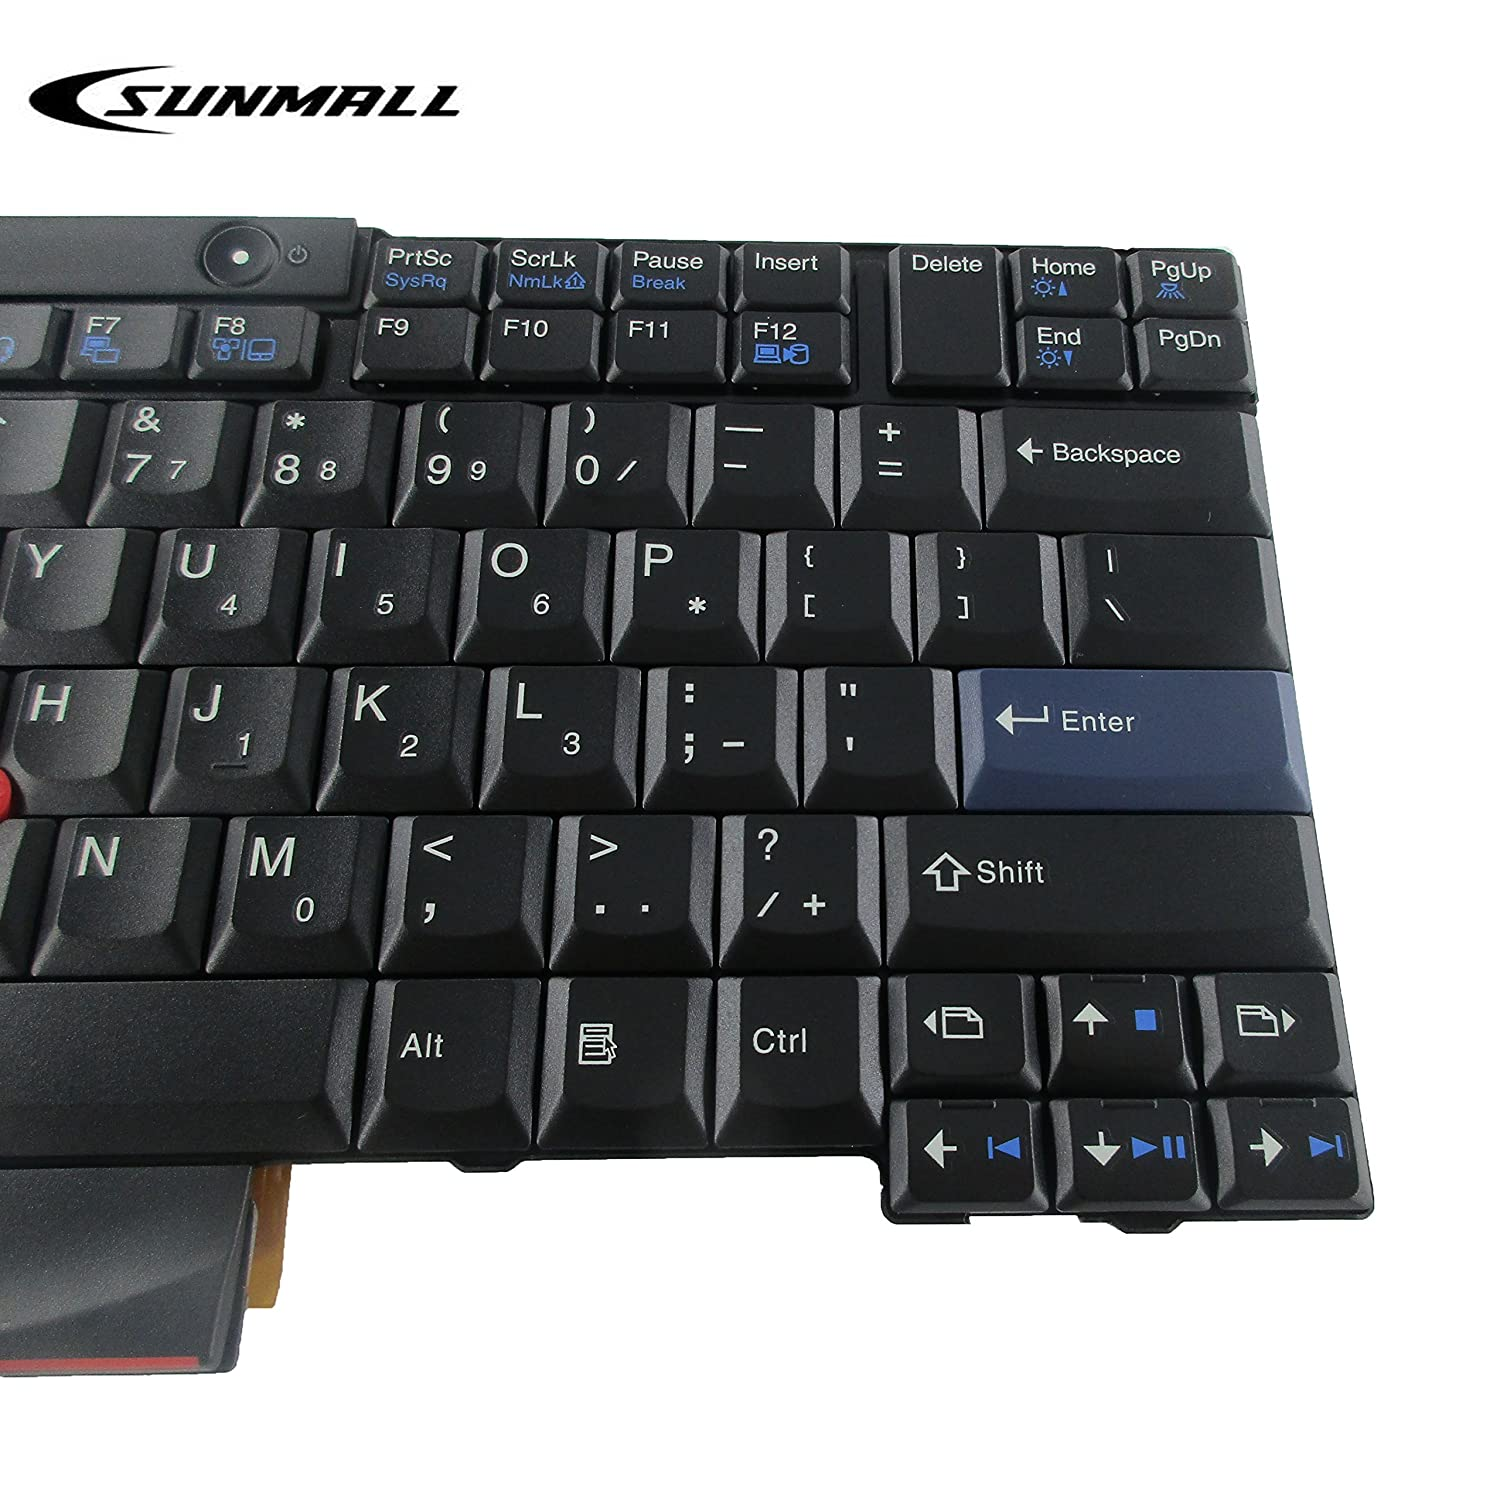 T410 Keyboard Sunmall New Laptop With Pointer Lenovo Thinkpad T400s T420 T510 T520 W510 X220 For X 220 T400 T420s Us Layout Black6 Months